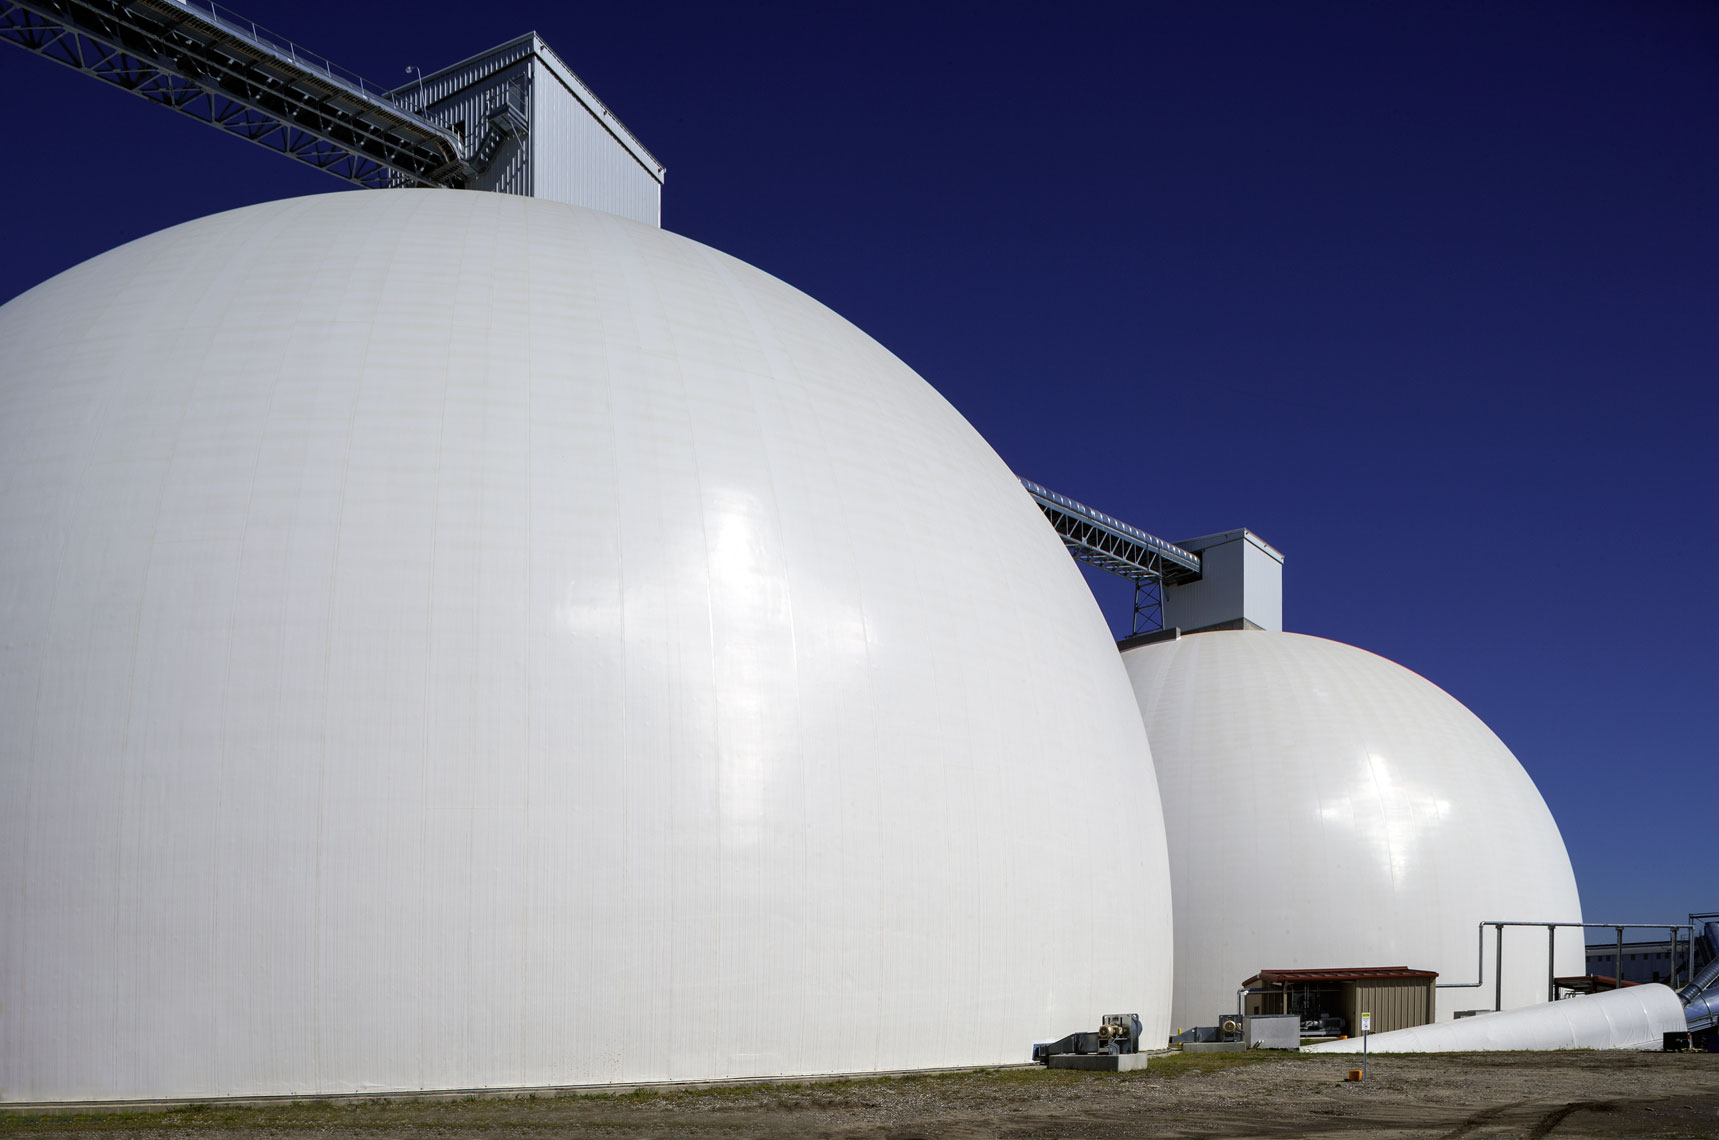 120-foot-tall domes at Drax Biomass for wood pellet storage